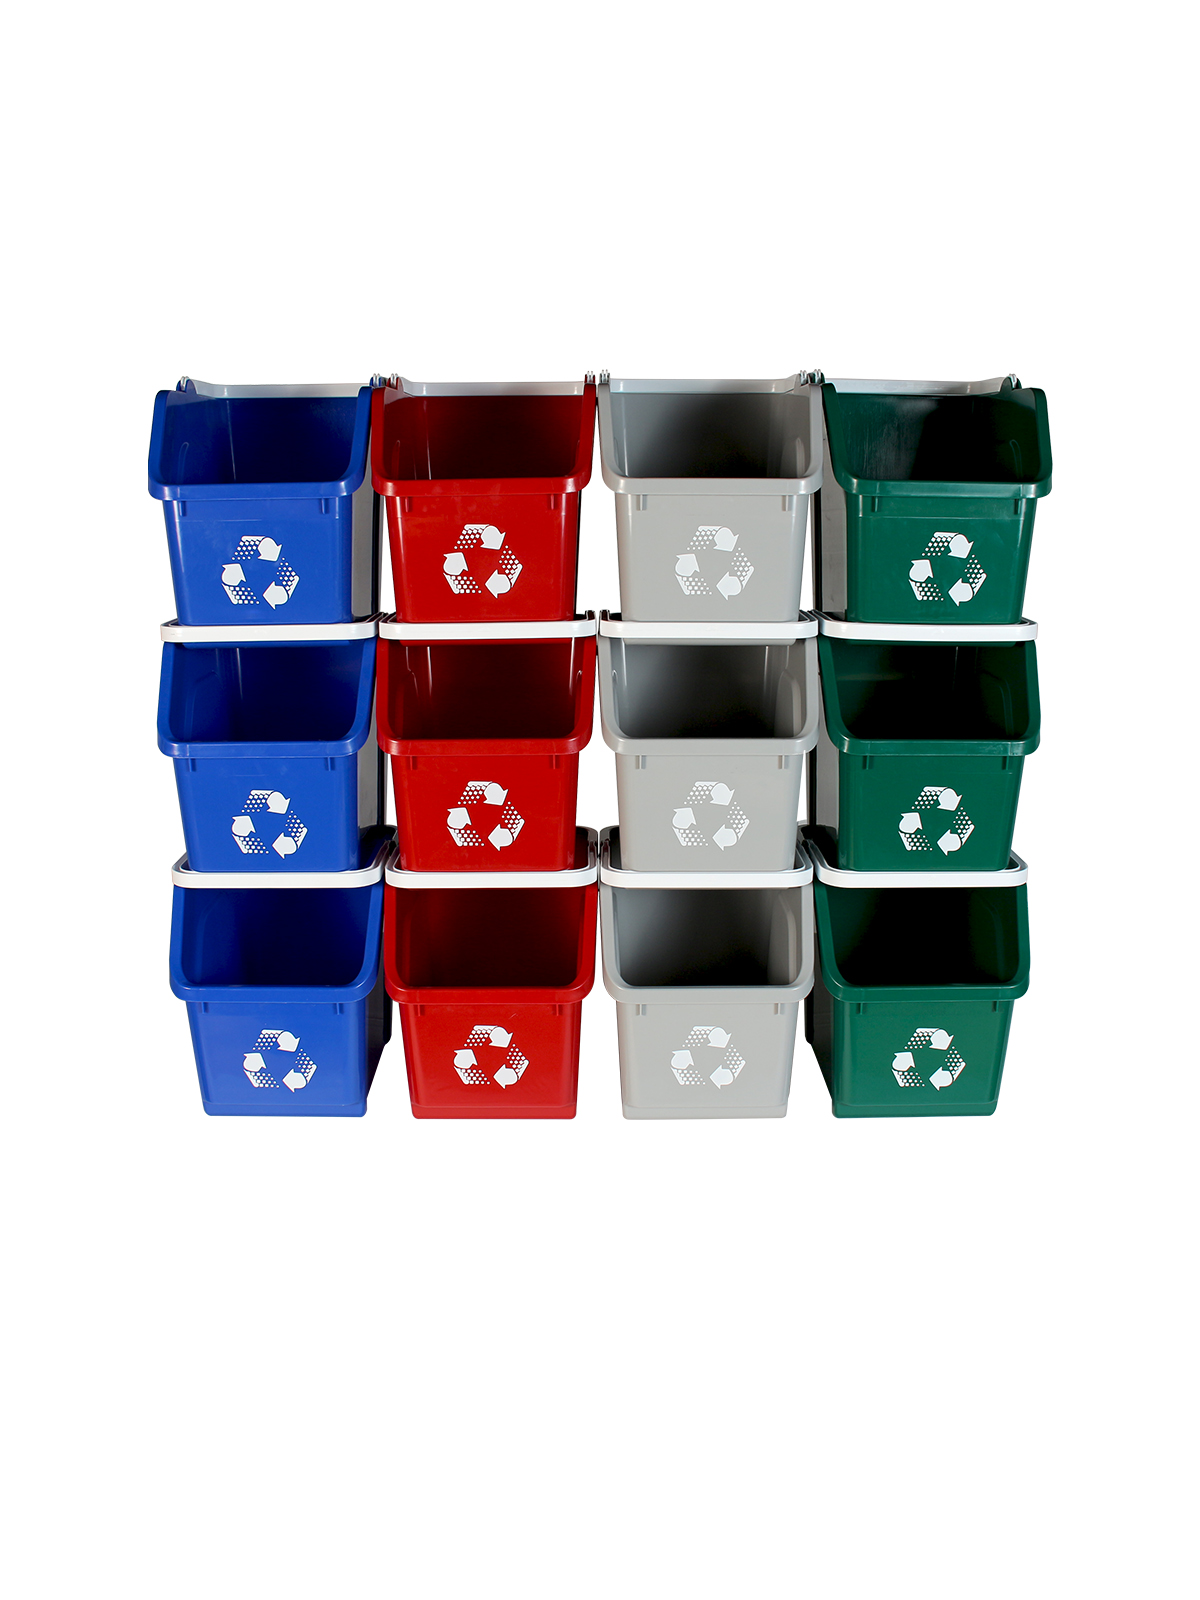 MULTI RECYCLER (12 Pack) - Quad - Mobius Loop - Full - Blue-Grey-Green-Red